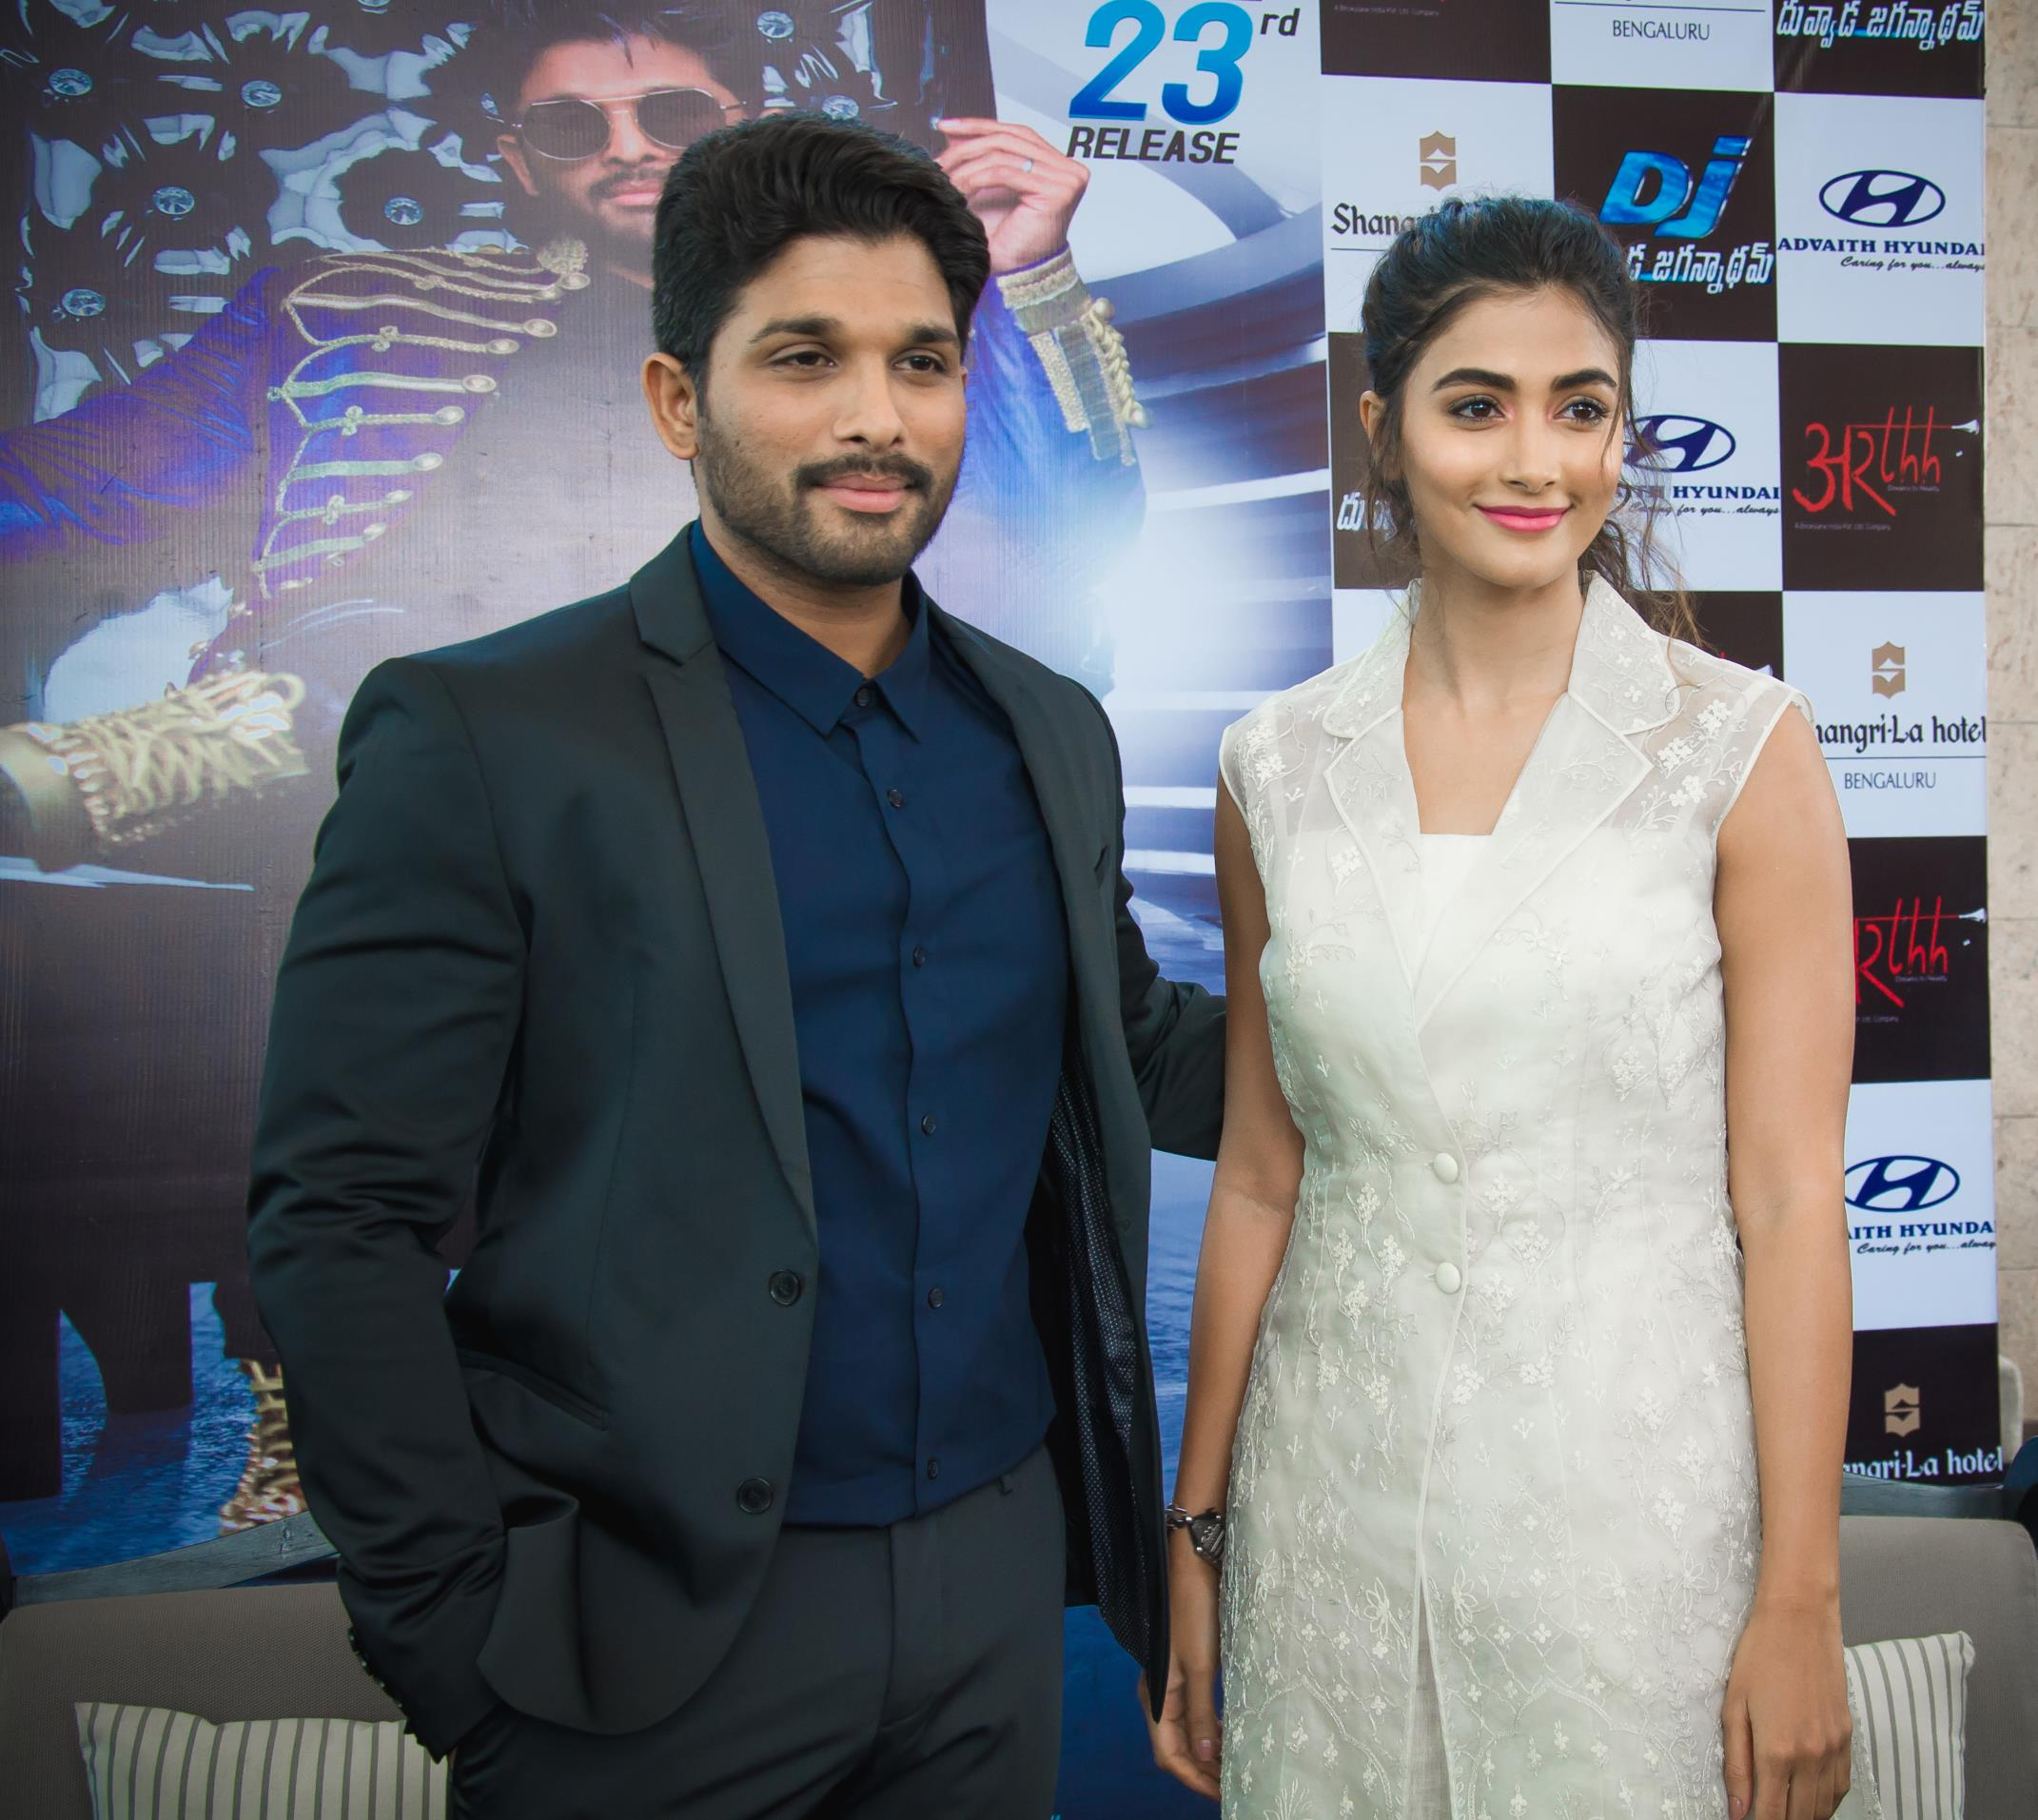 http://www.andhravilas.net/media/Gallery/Allu-Arjun-Pooja-Hegde-at-DJ-Press-Meet-in-Bengaluru-1261893/thumb/7081.jpg